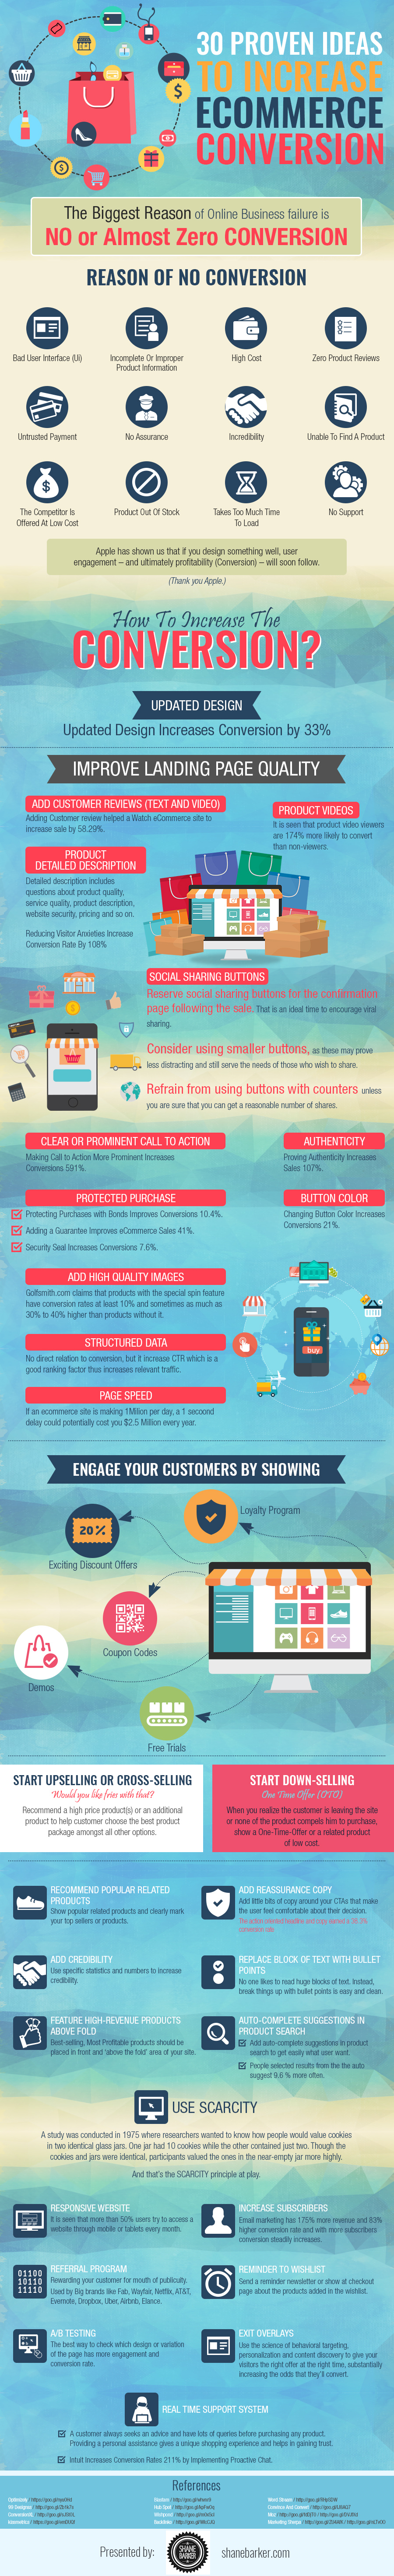 eCommerce Conversion Infographic: 30 Proven Ideas To Catapult Your Revenue